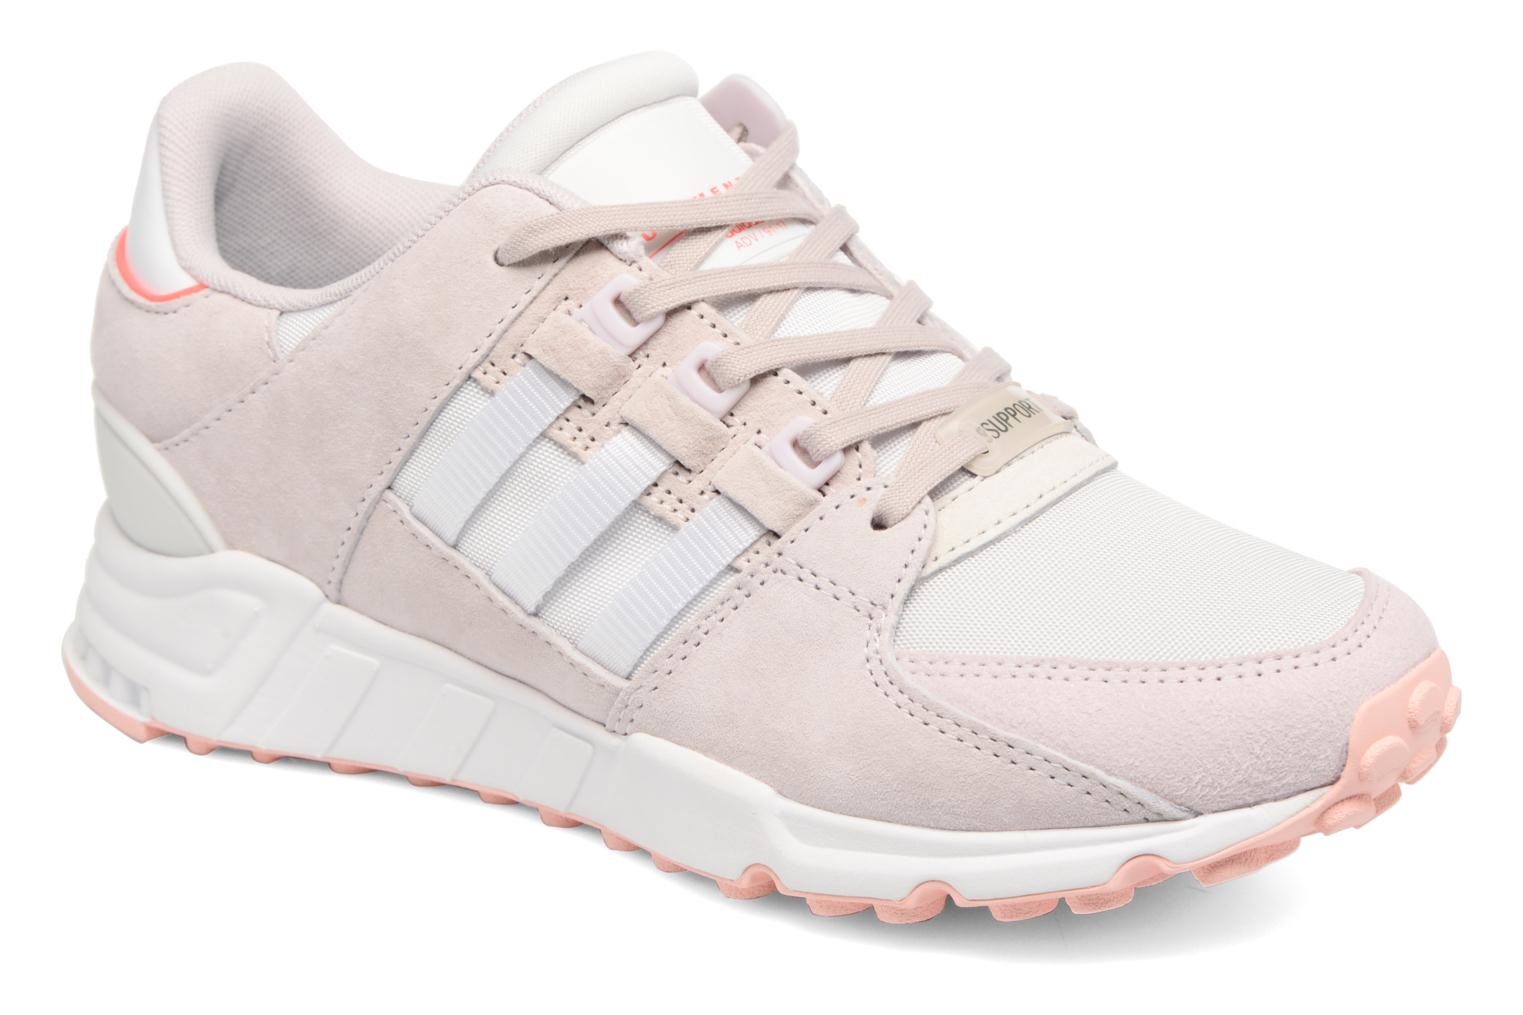 Eqt Support Rf W Maugla/Ftwbla/Turbo